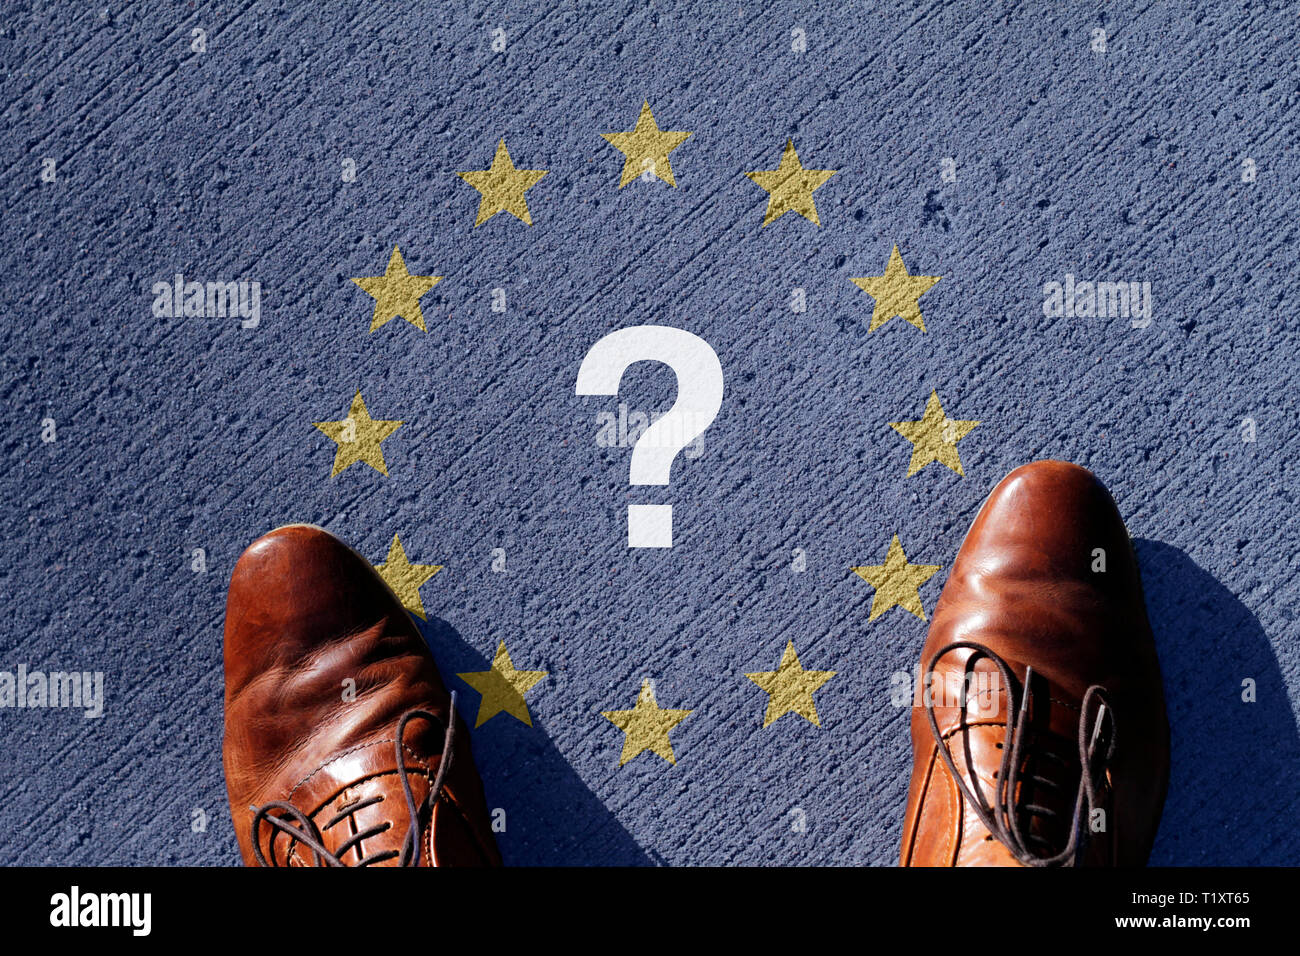 EU regulation and uncertainty - European Union flag and question mark - Stock Image